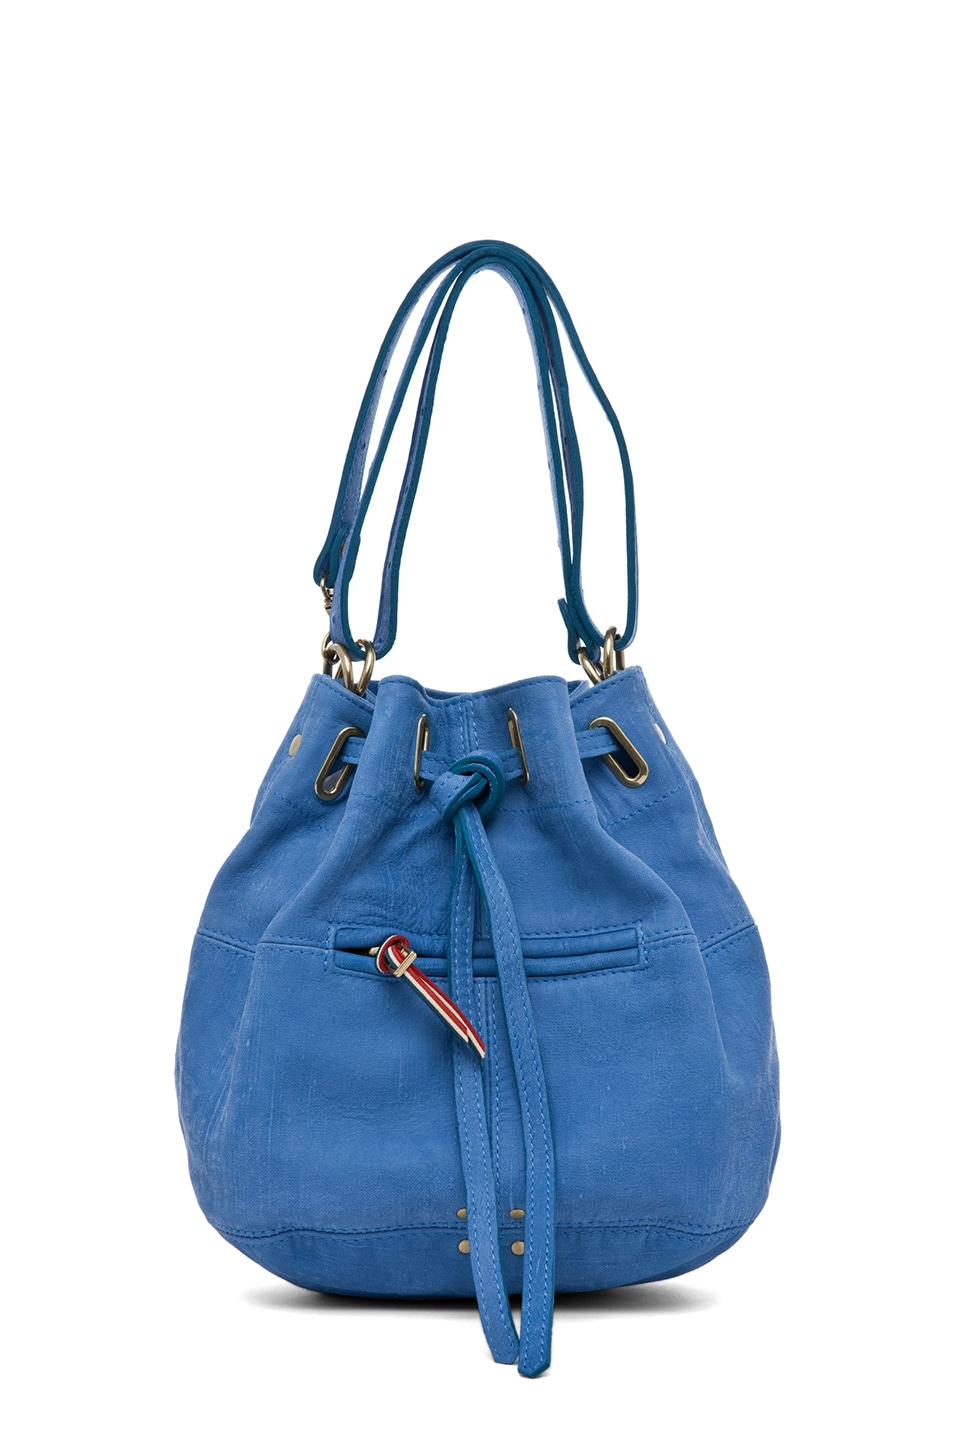 Image 1 of Jerome Dreyfuss Alain S Bag in Denim Bleu